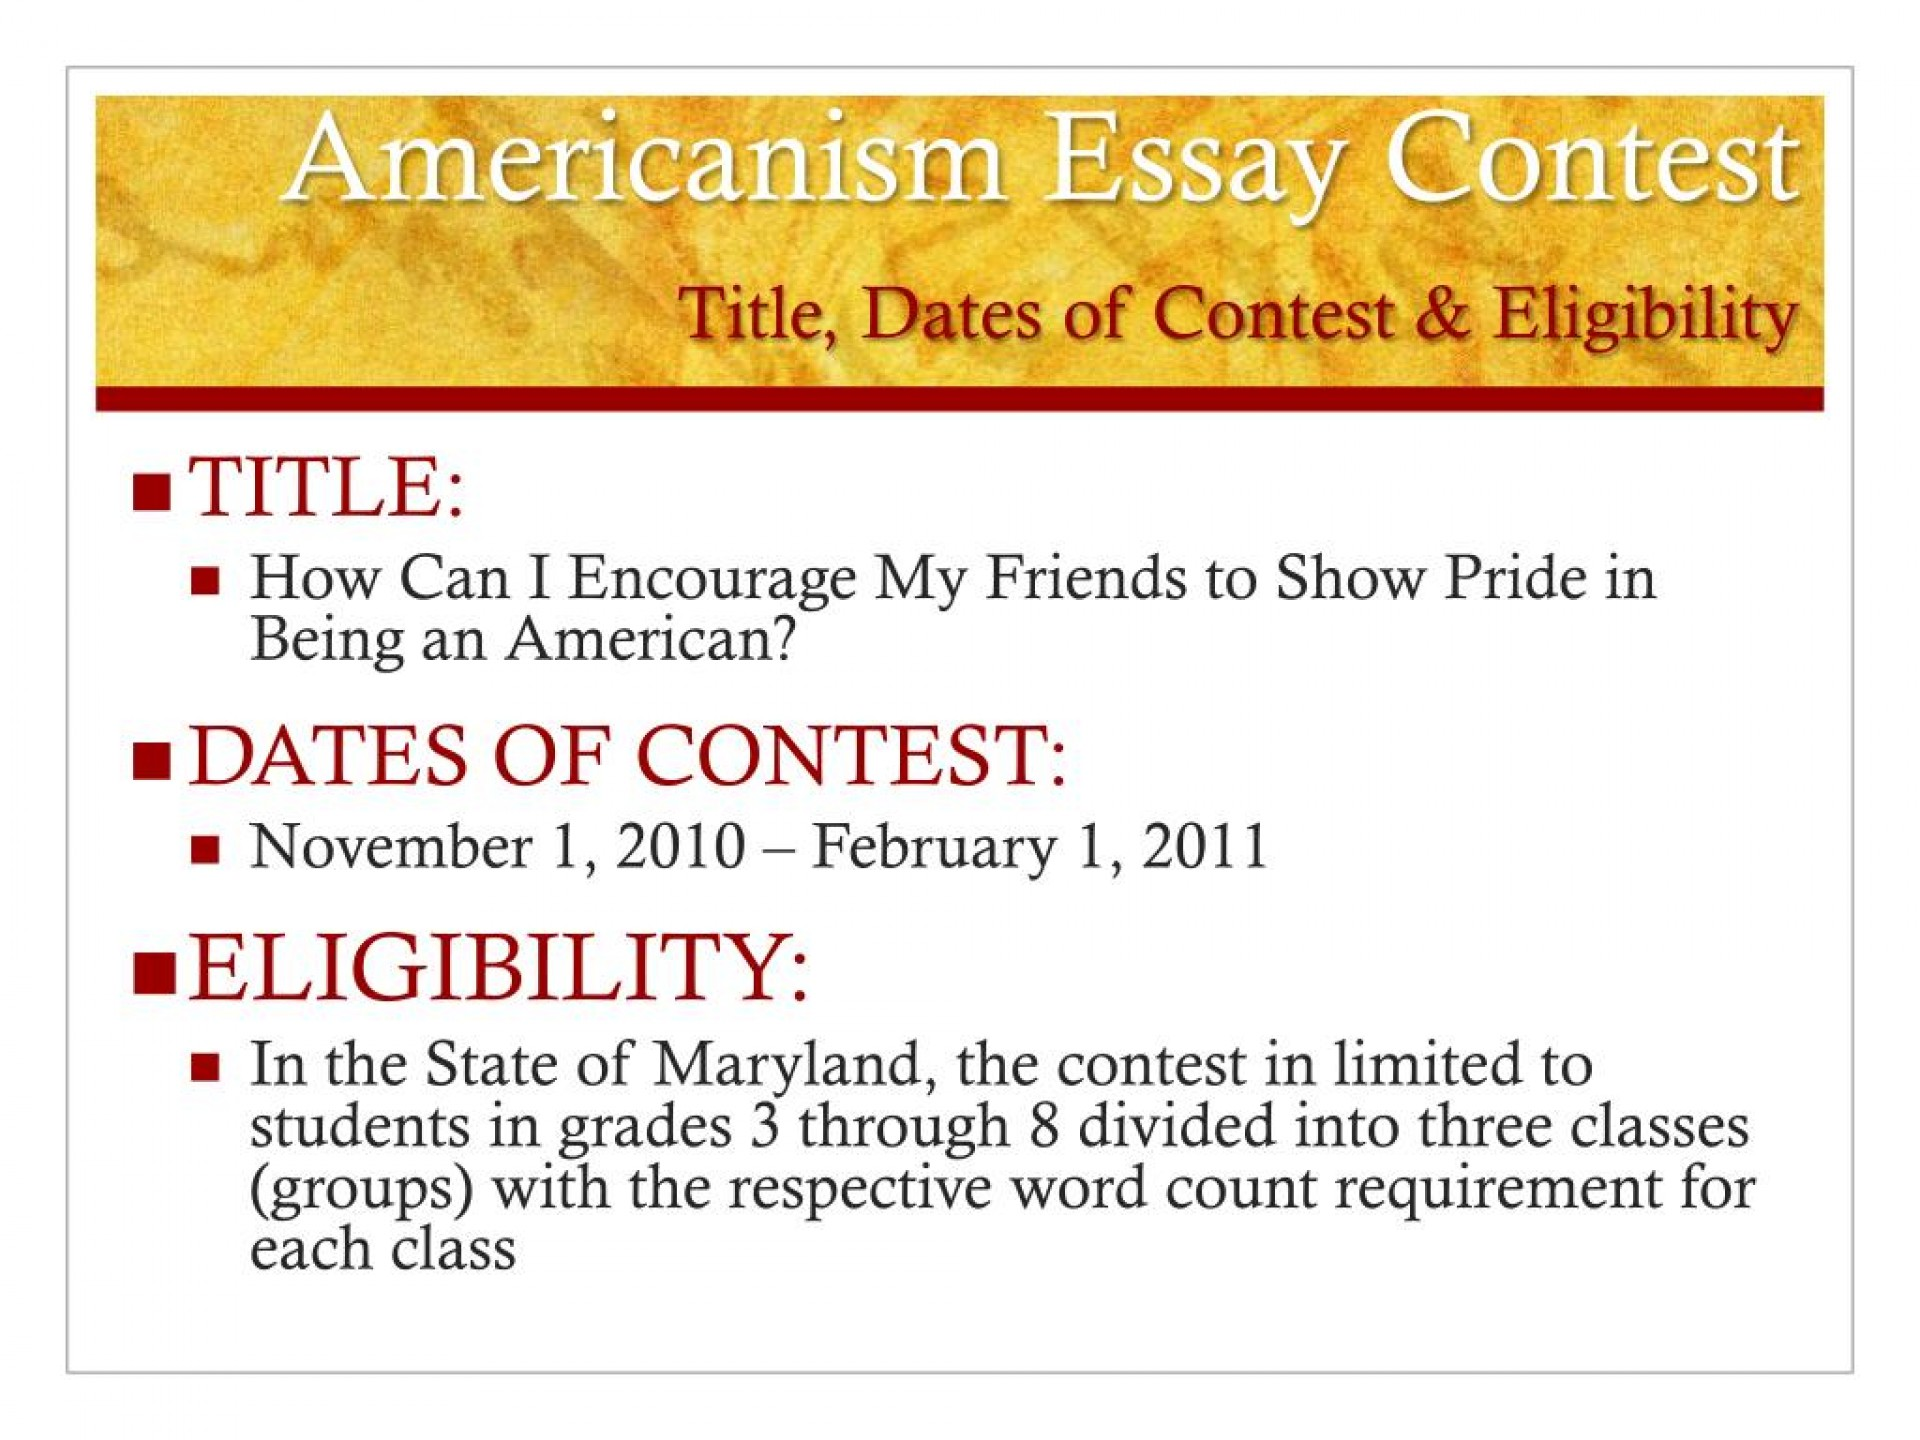 011 Americanism Essay Contest Title Dates Of Eligibility L Astounding Amvets 2017 For Grades 7–12 Education Leaders 1920